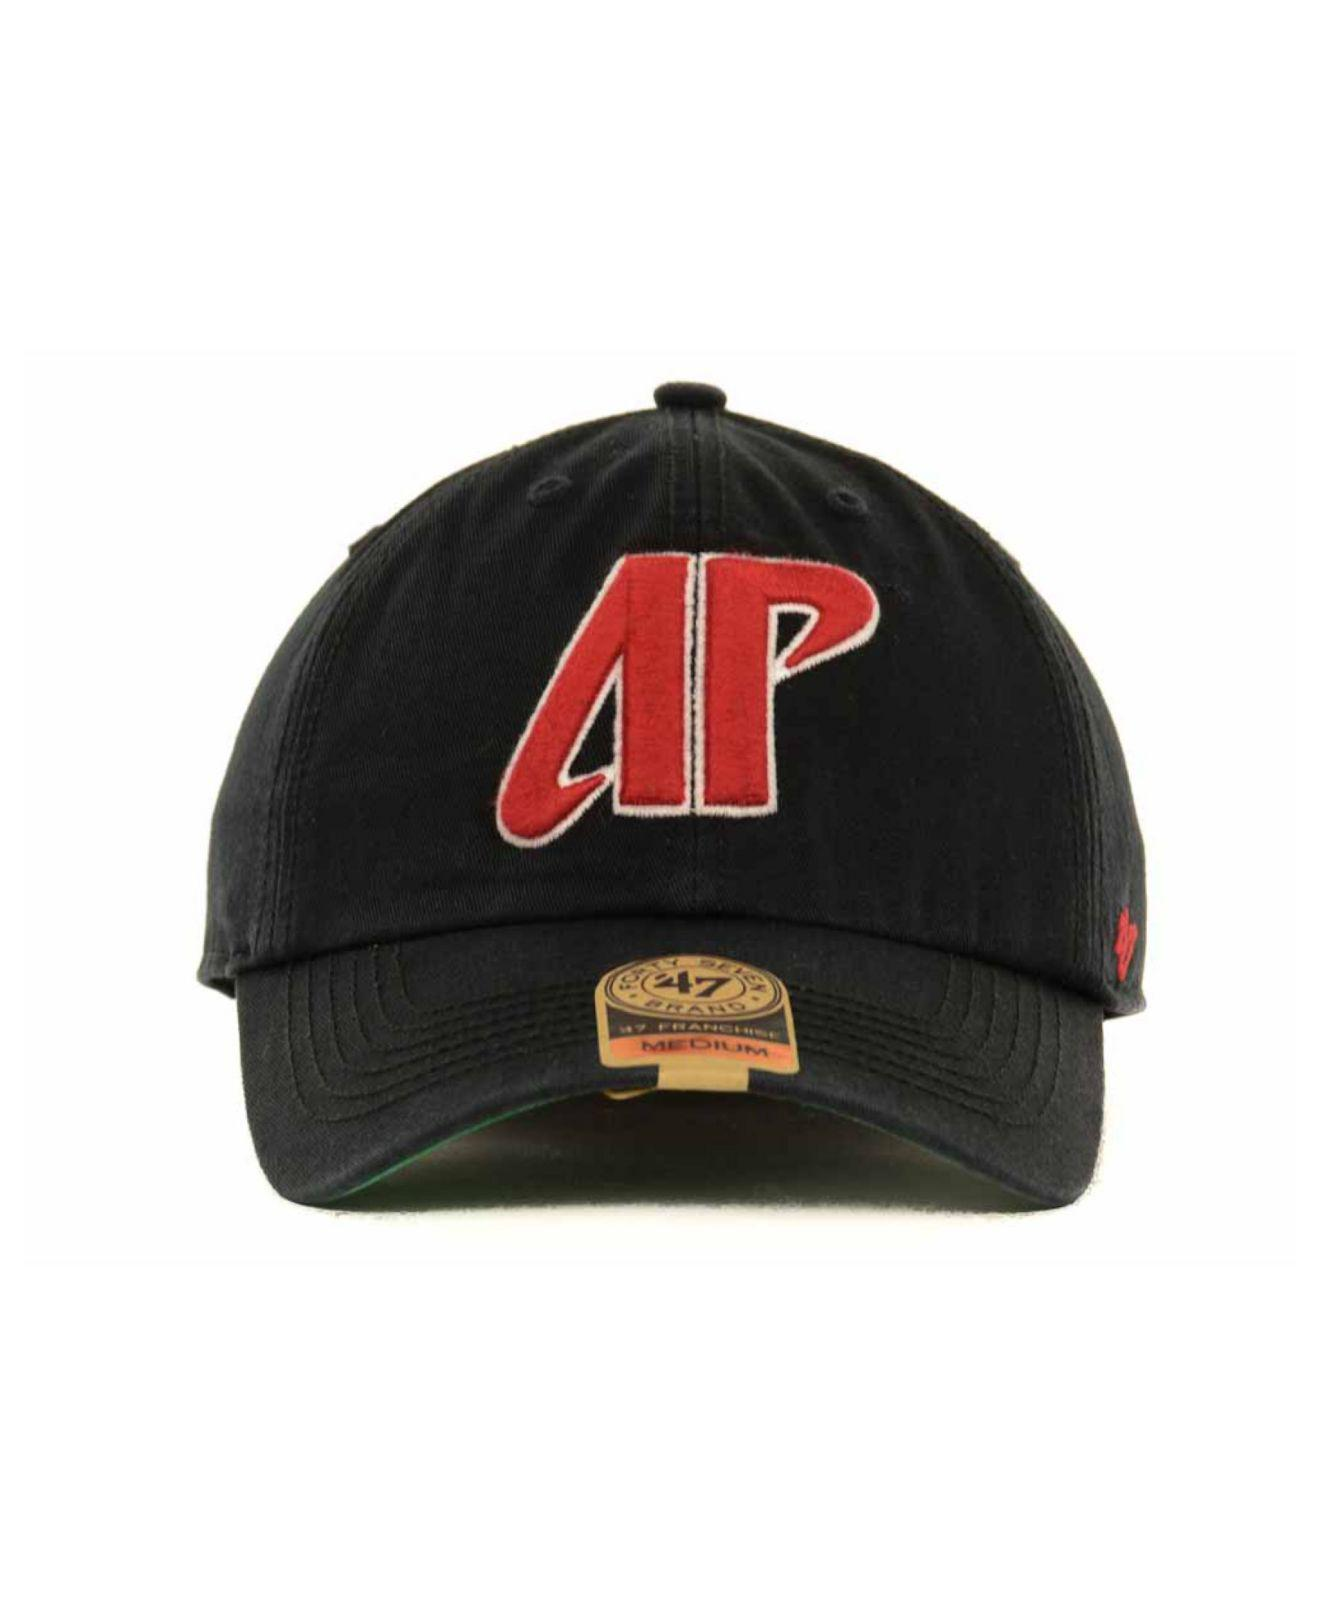 new styles 5fb16 140e6 ... clearance 47 brand austin peay governors ncaa 47 franchise cap in black  for men lyst c32c1